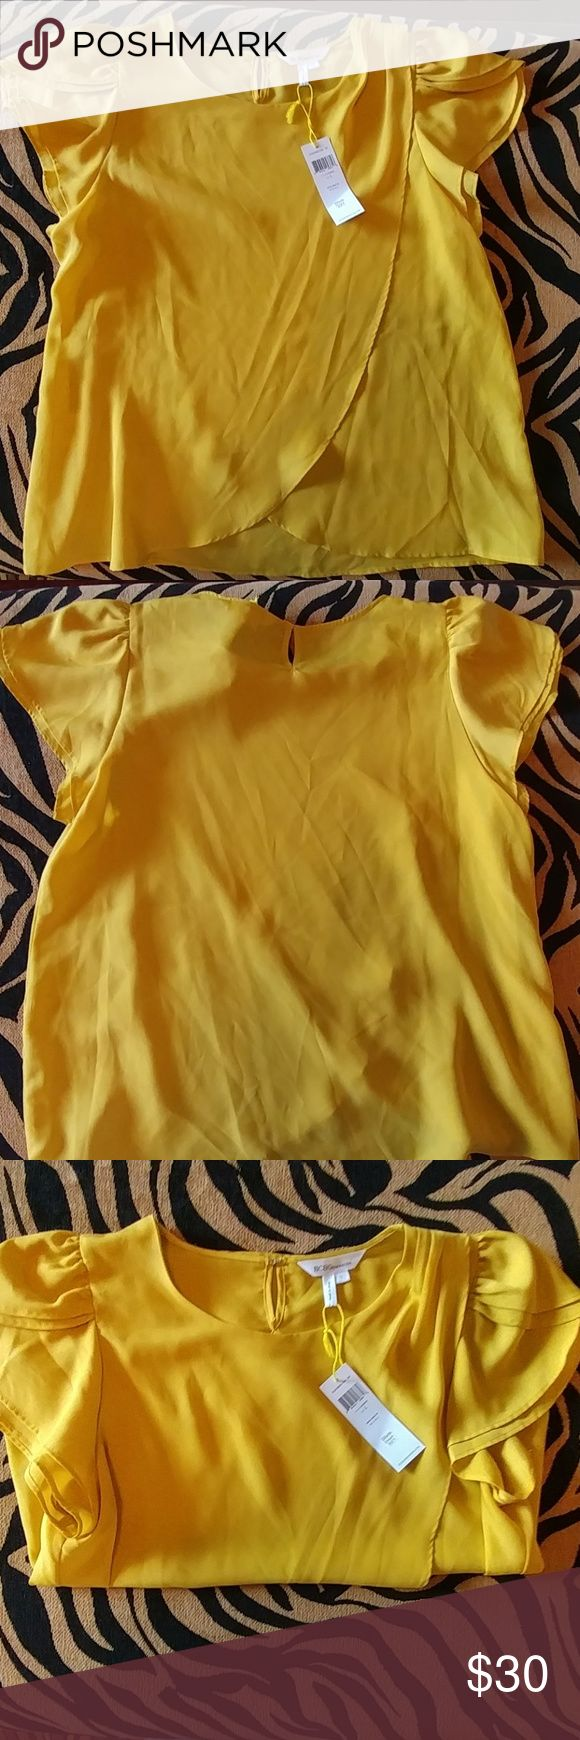 BCBGeneration Sunrise Ruffle Sleeve Top Brand new yellow flutter sleeve top with cute plea at the shoulder. 100% polyestee BCBGeneration Tops Blouses